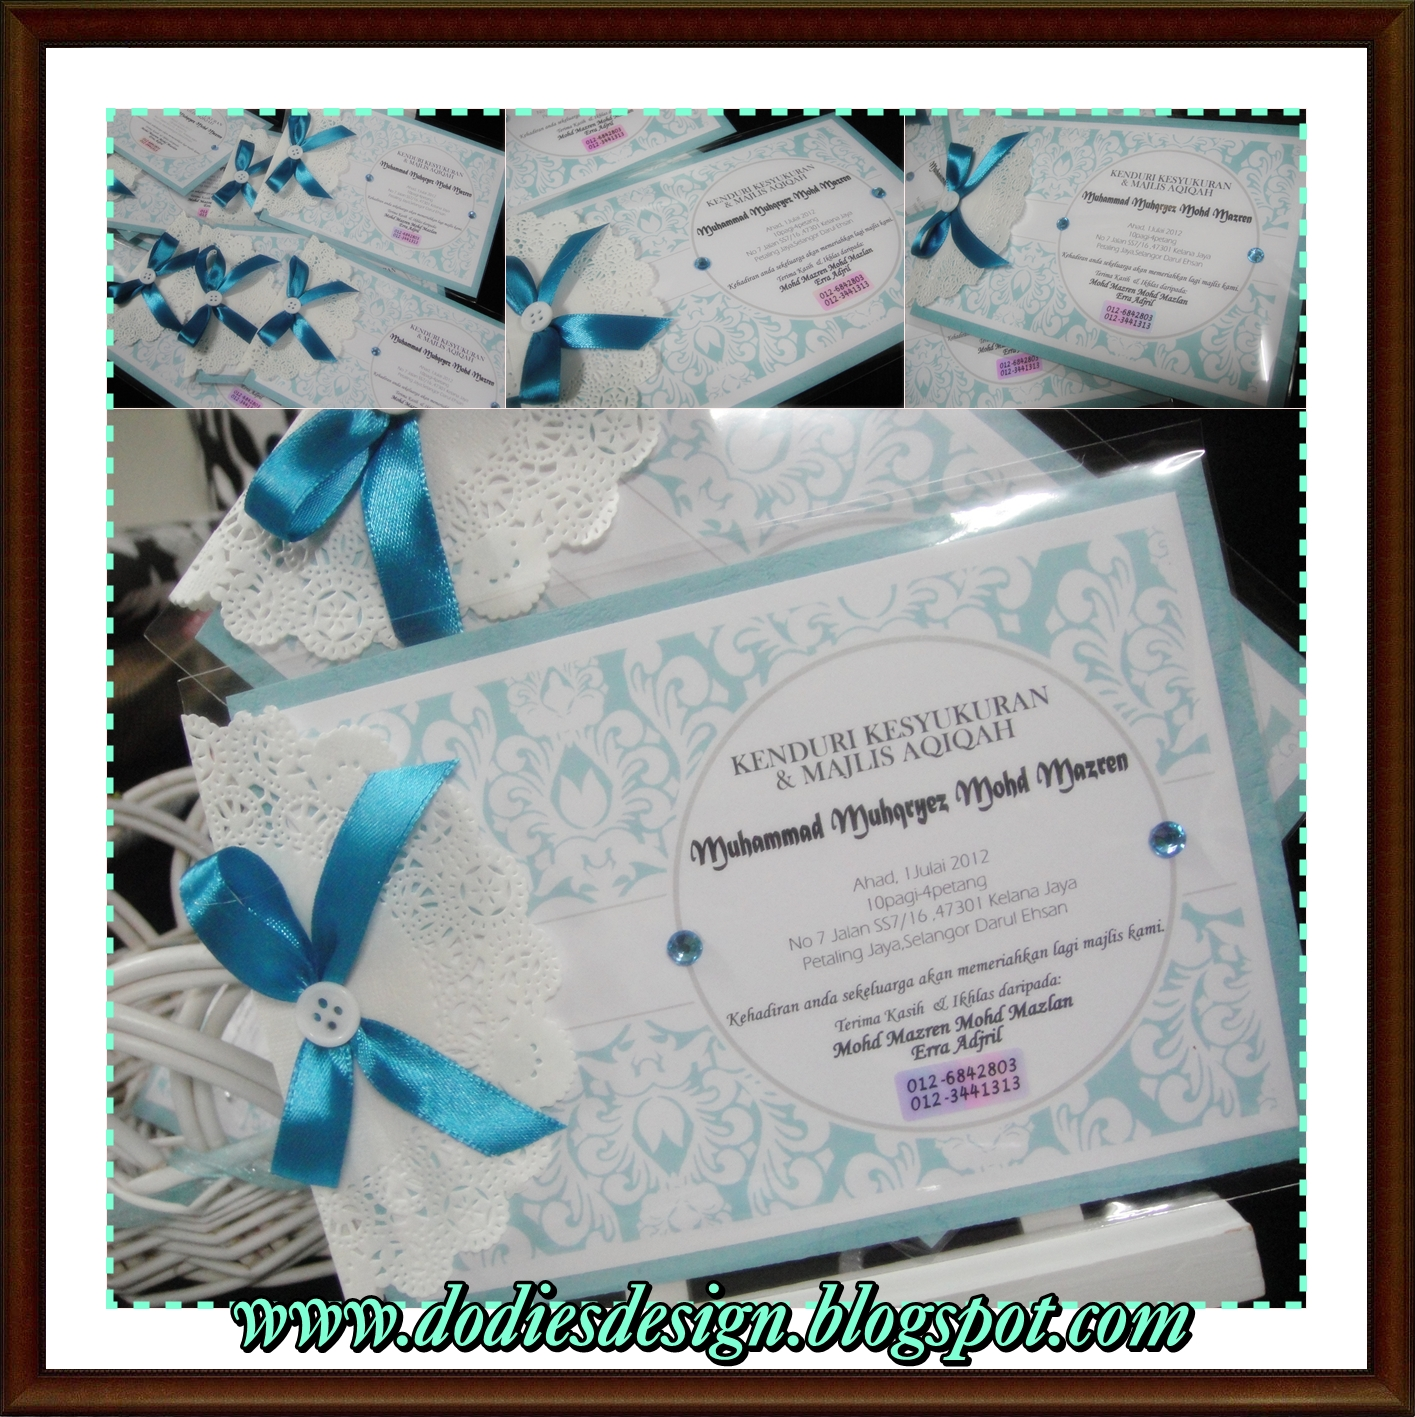 Dodiesdesign aqiqah invitation card mazrin erras newborn baby aqiqah invitation card mazrin erras newborn baby stopboris Image collections